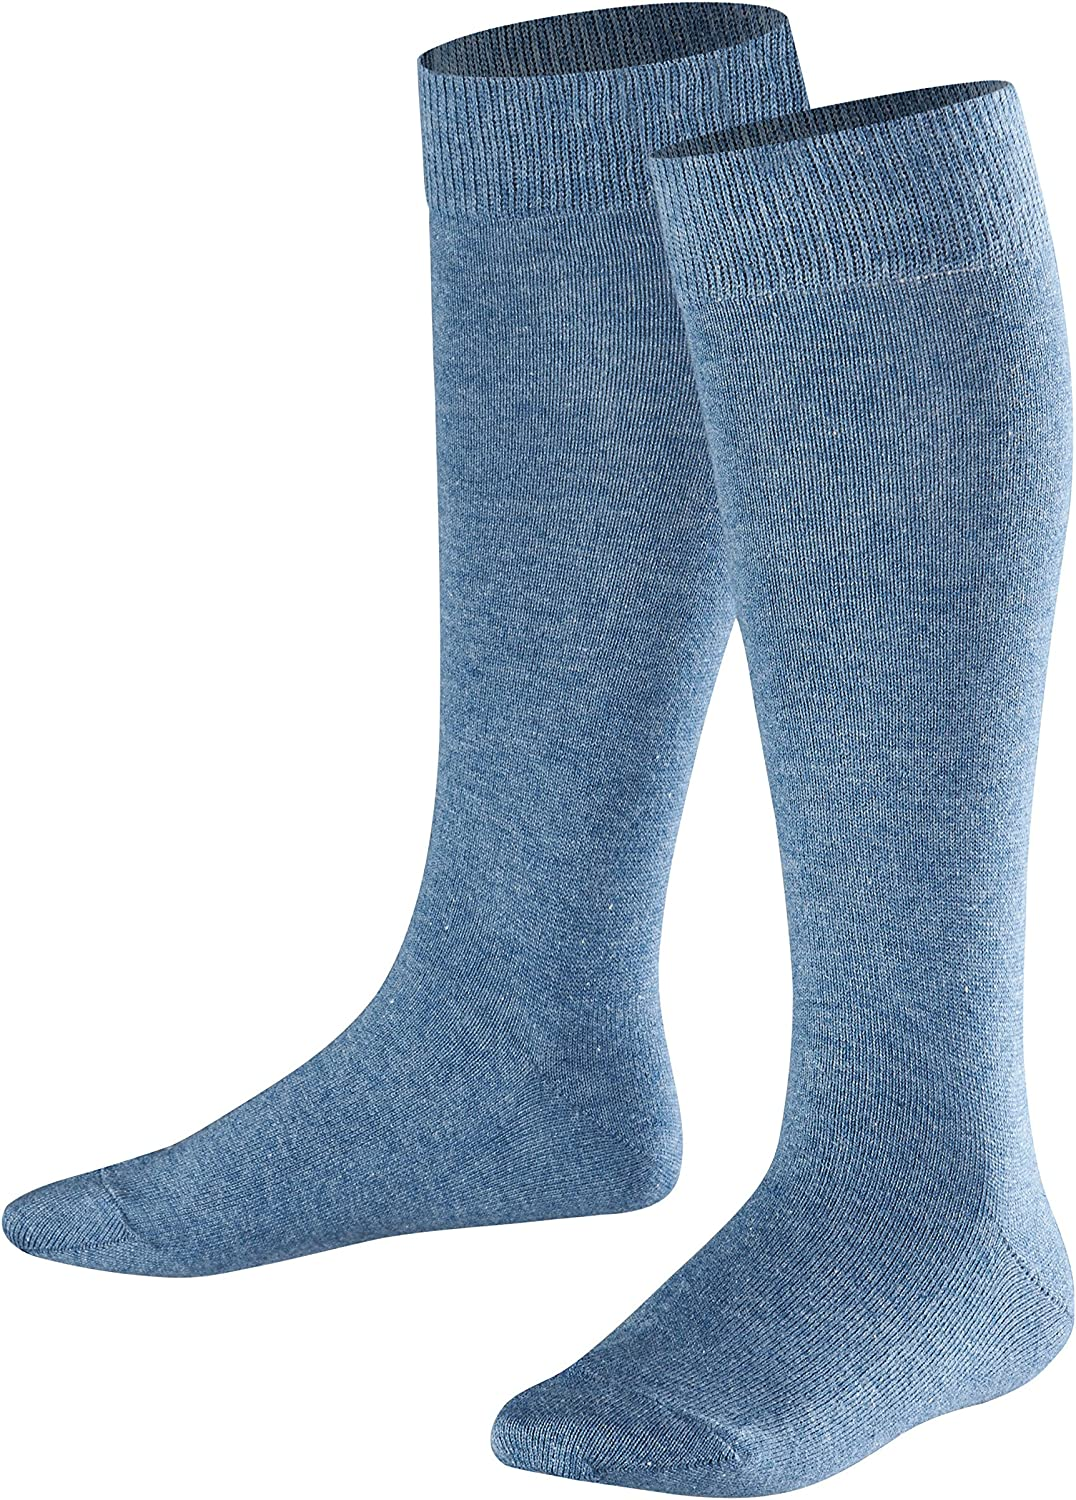 durable FALKE Kids Family Knee-Highs 1 Pair Year-round quality UK sizes 6 ideal for boots Multiple Colours 94/% Cotton kid EU 23-42 - 8